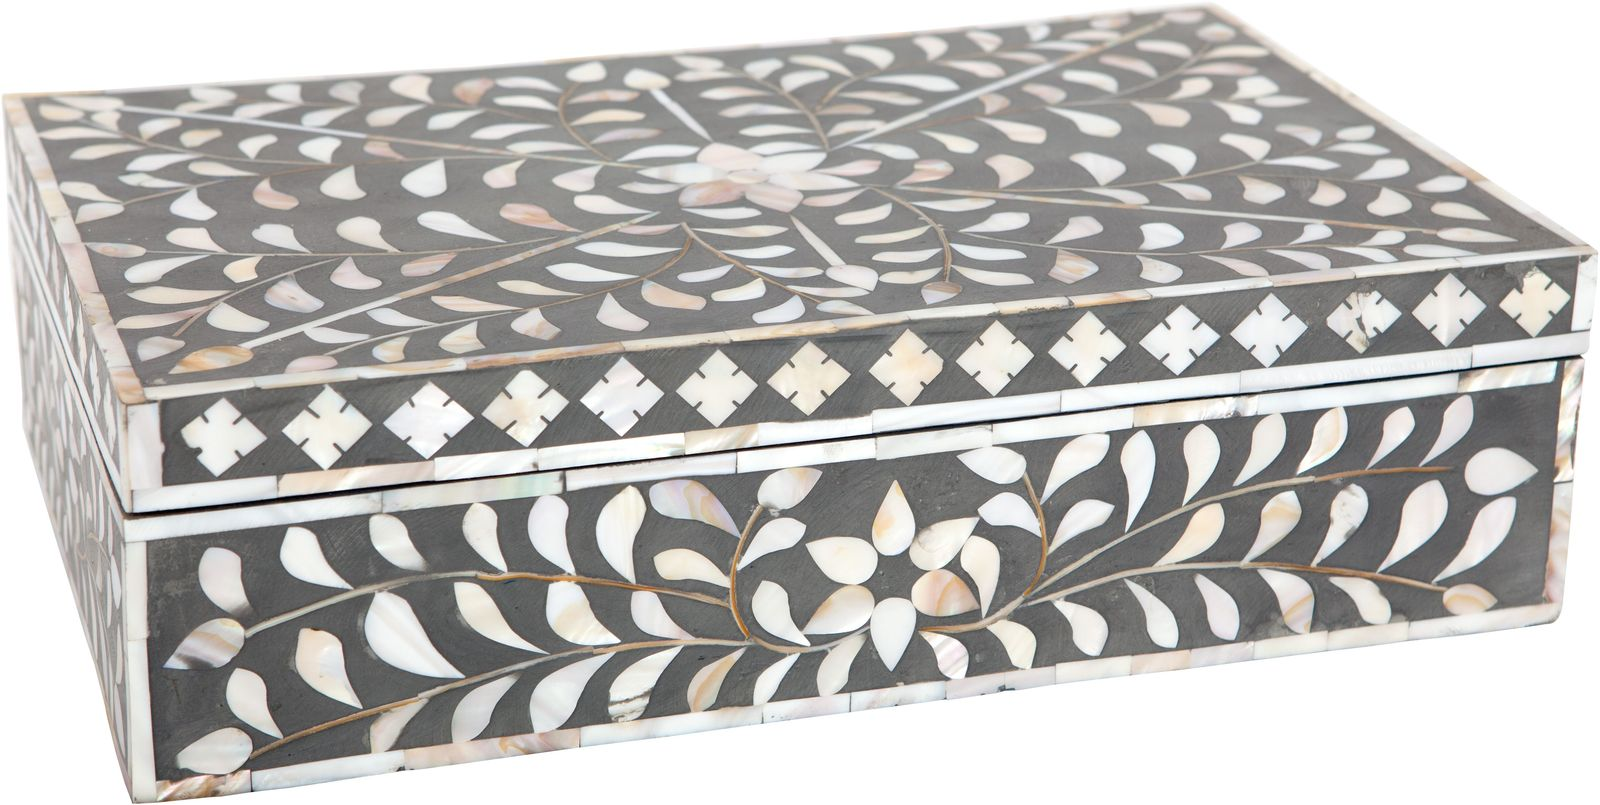 Ruby Star Traders Mother Of Pearl Inlay Box Taupe